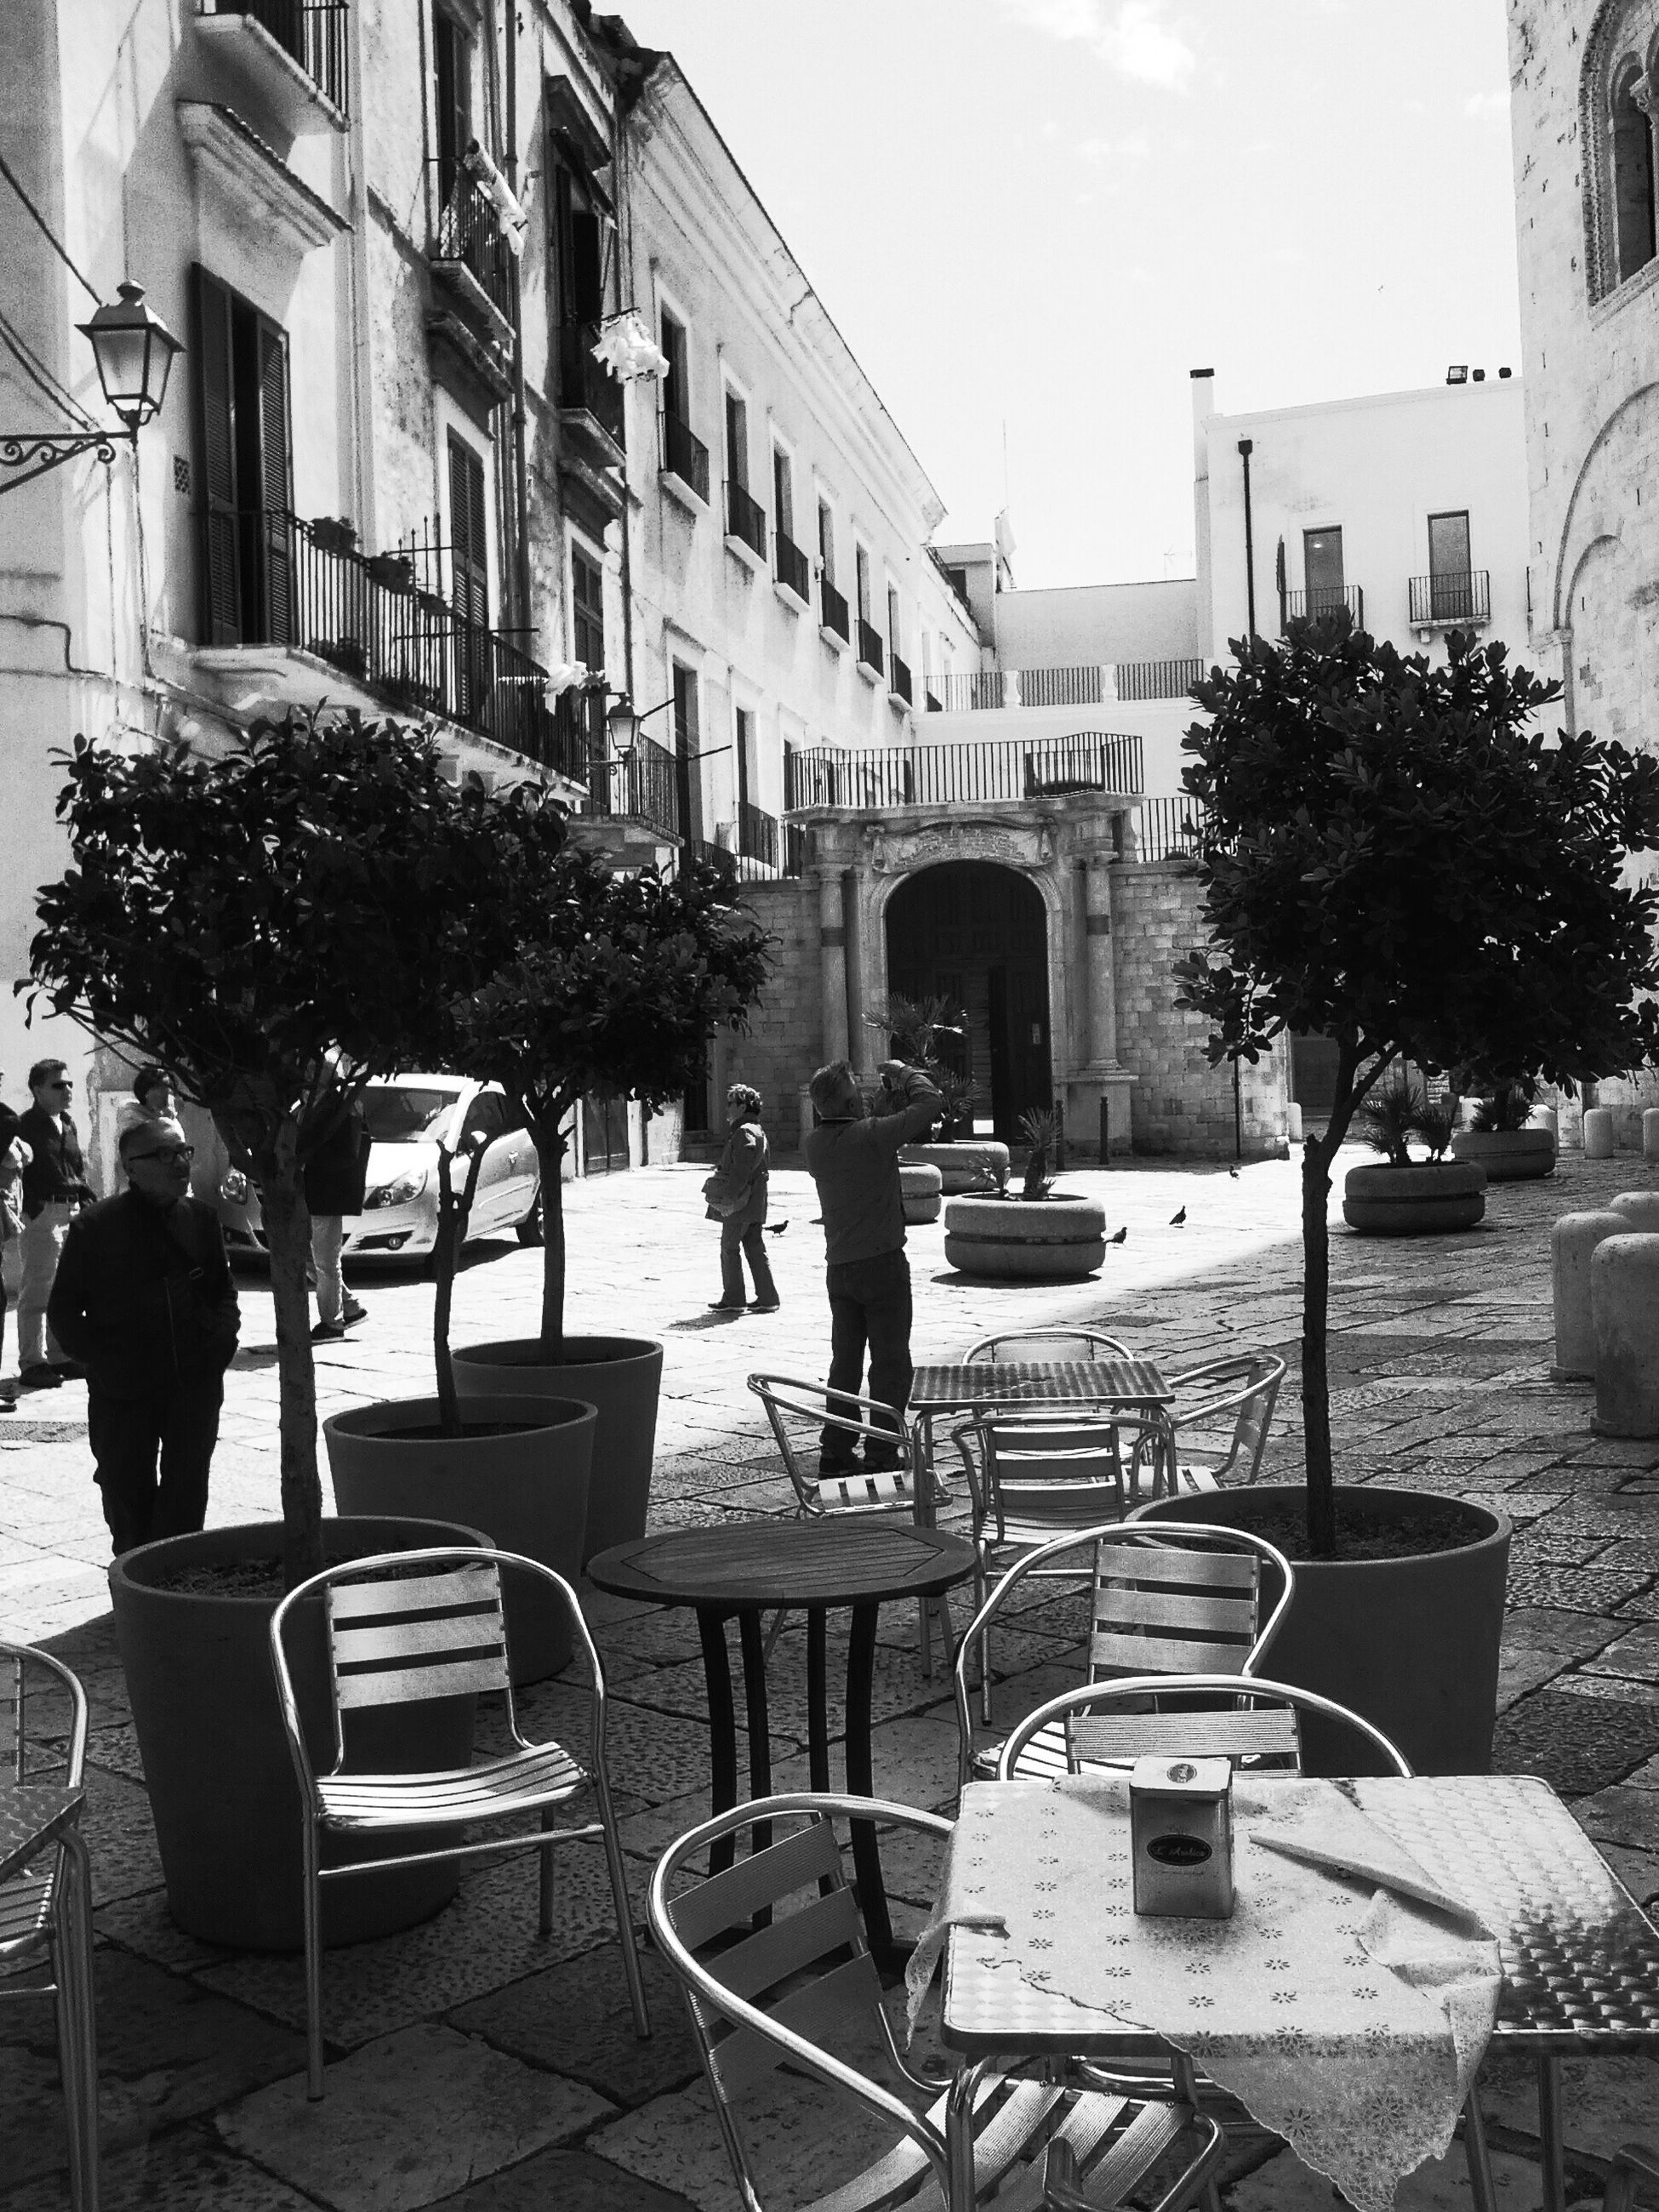 building exterior, chair, architecture, men, built structure, table, sidewalk cafe, city, person, sitting, city life, lifestyles, tree, street, incidental people, bench, restaurant, relaxation, day